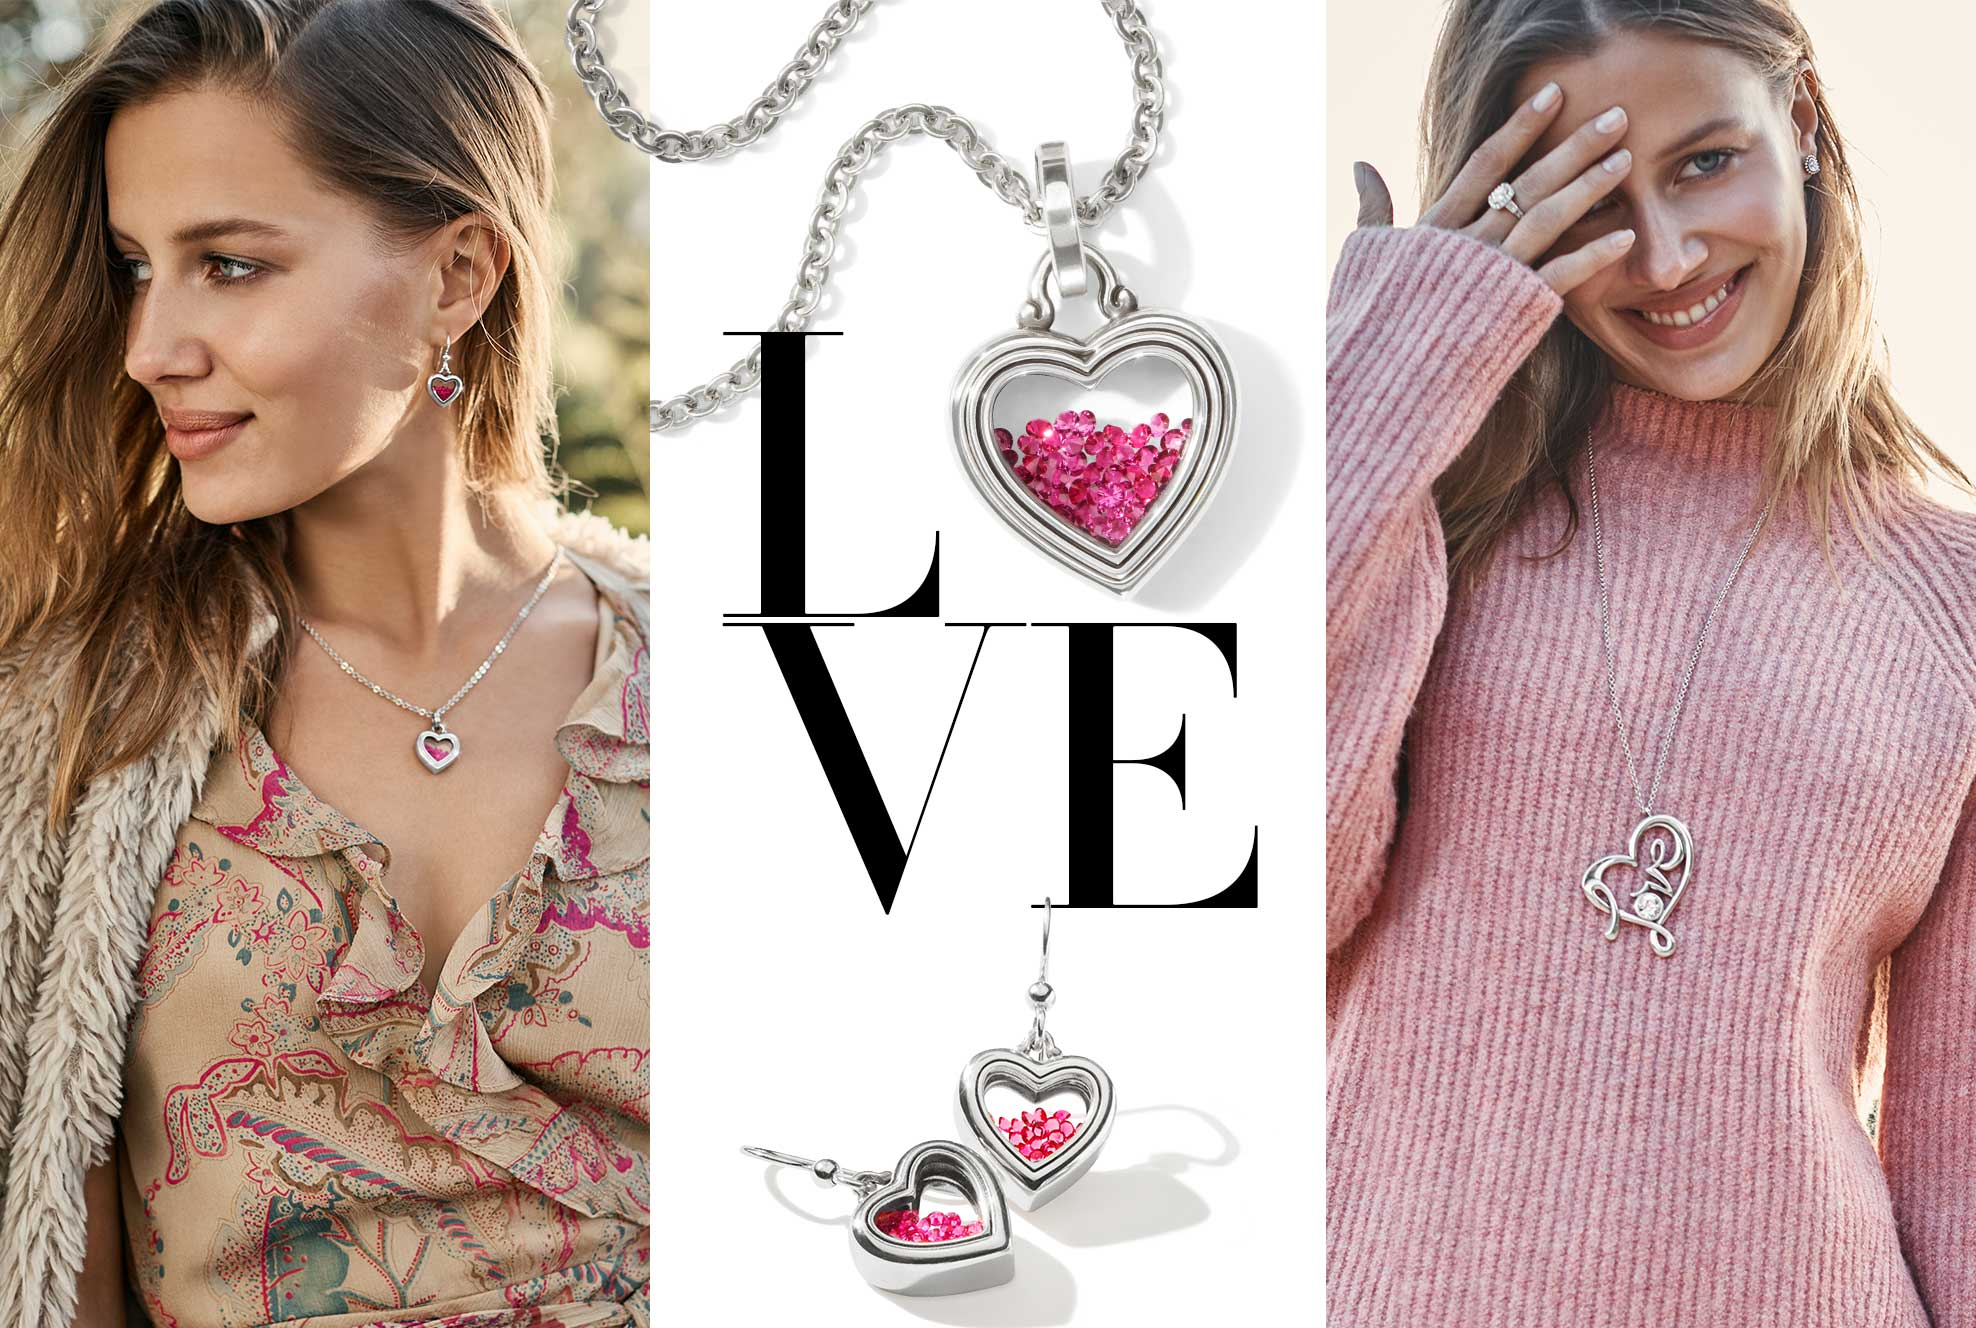 models with heart jewelry